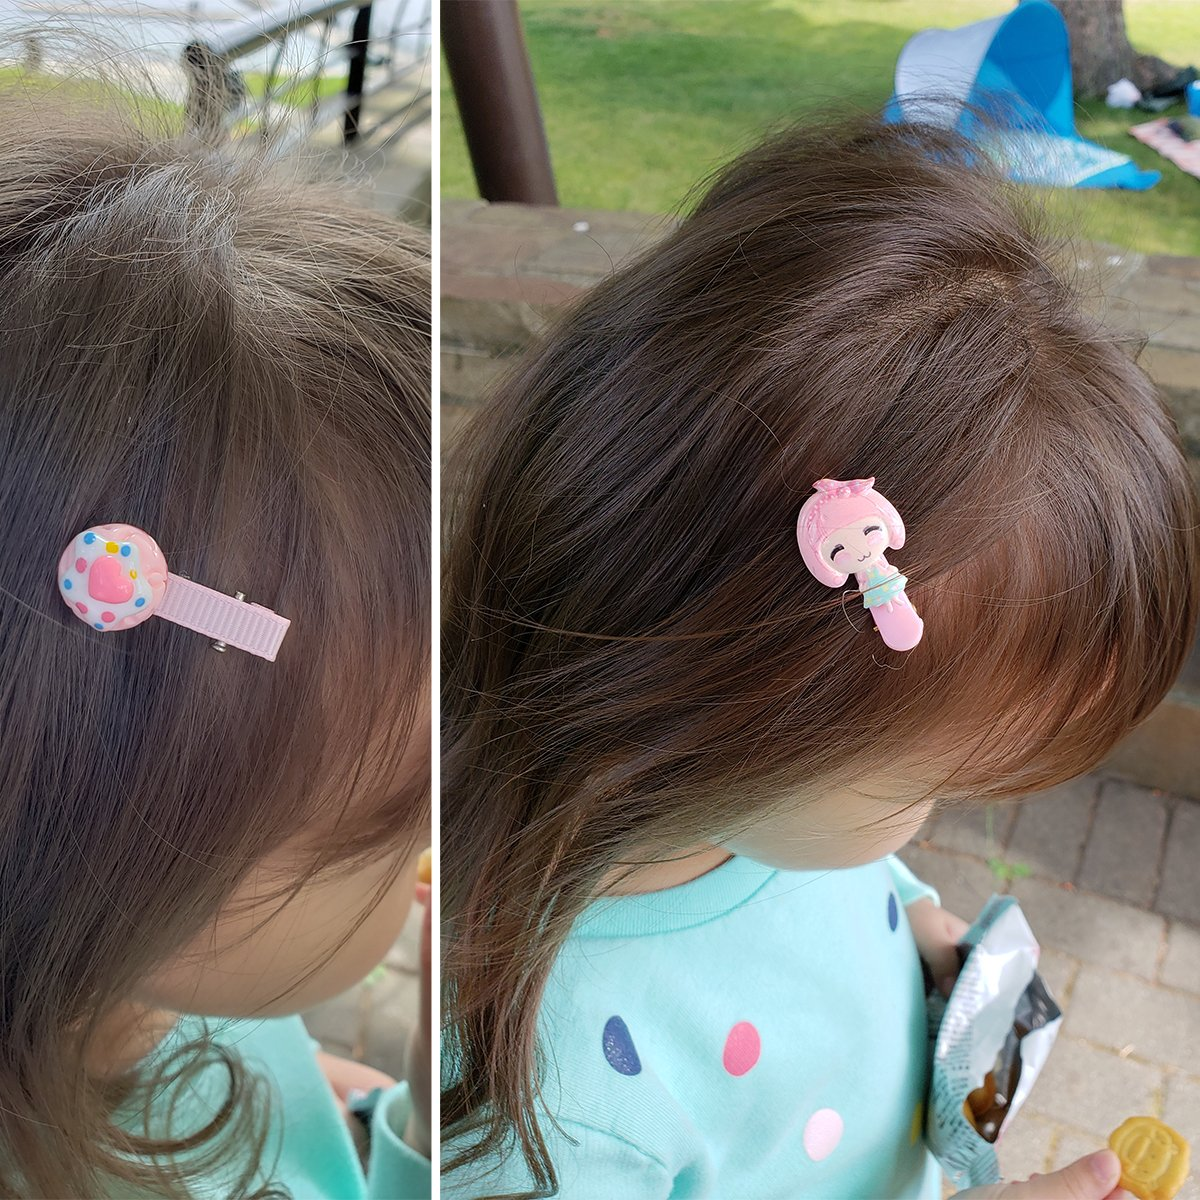 Hair Accessories for Girls, Hair Set Barrettes, Hair Ties, Hair Bows, Hair Clips for Toddlers, Little girls, Girls. Gifts for Birthday, Back to School, Christmas, Any special holiday-By LittleBigDream